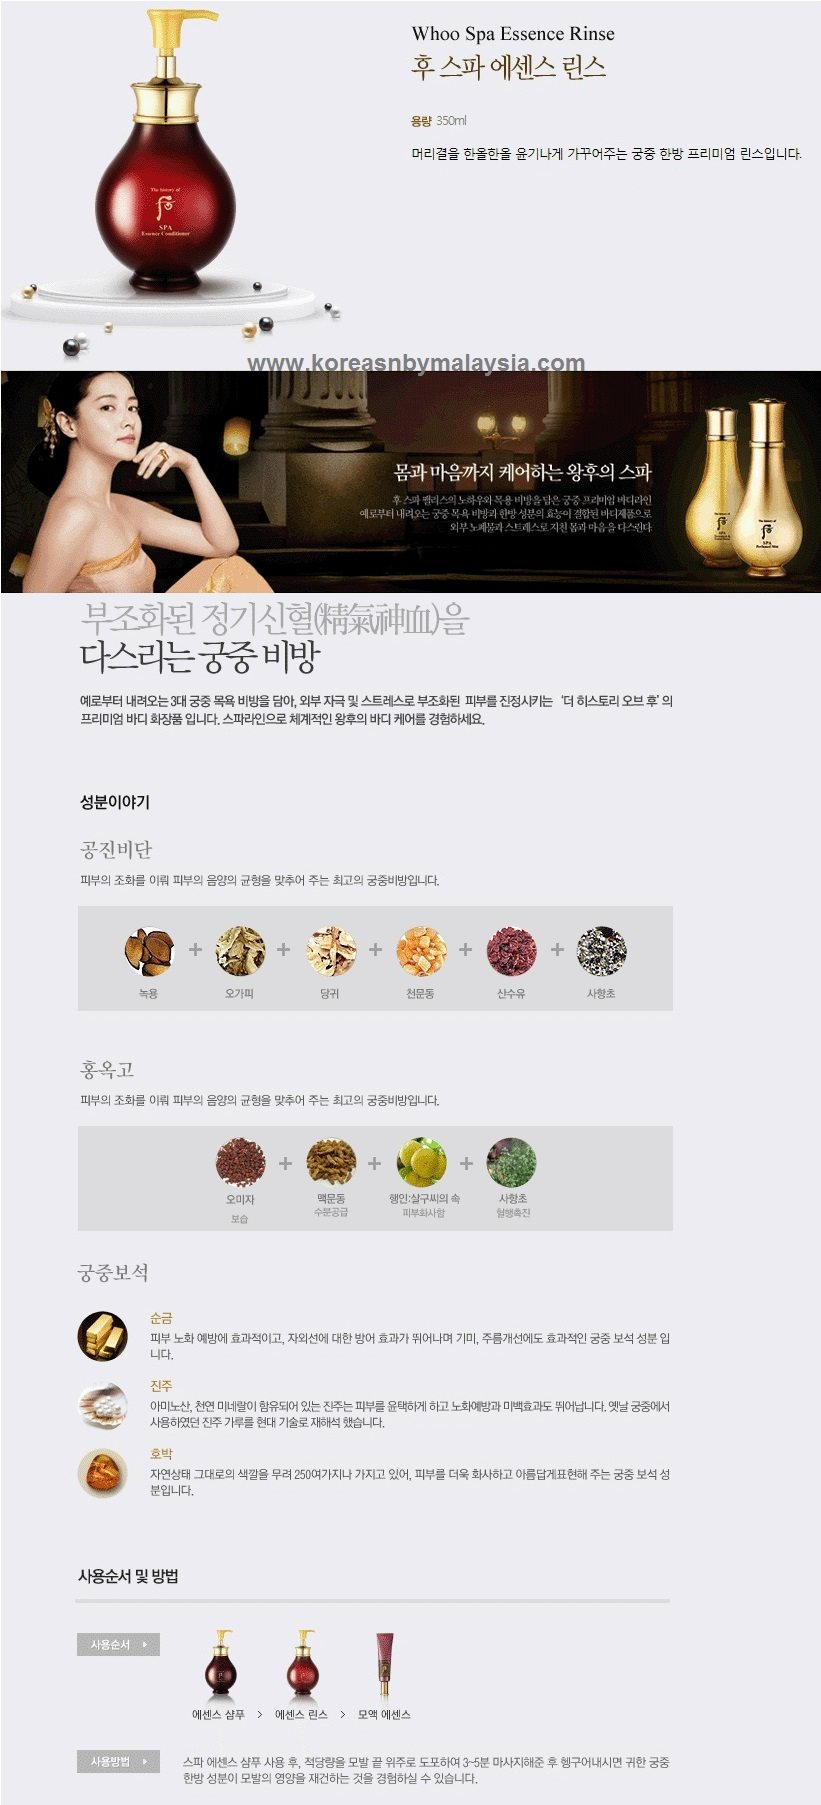 The History of Whoo WhooSpa Essence Rinse 350ml